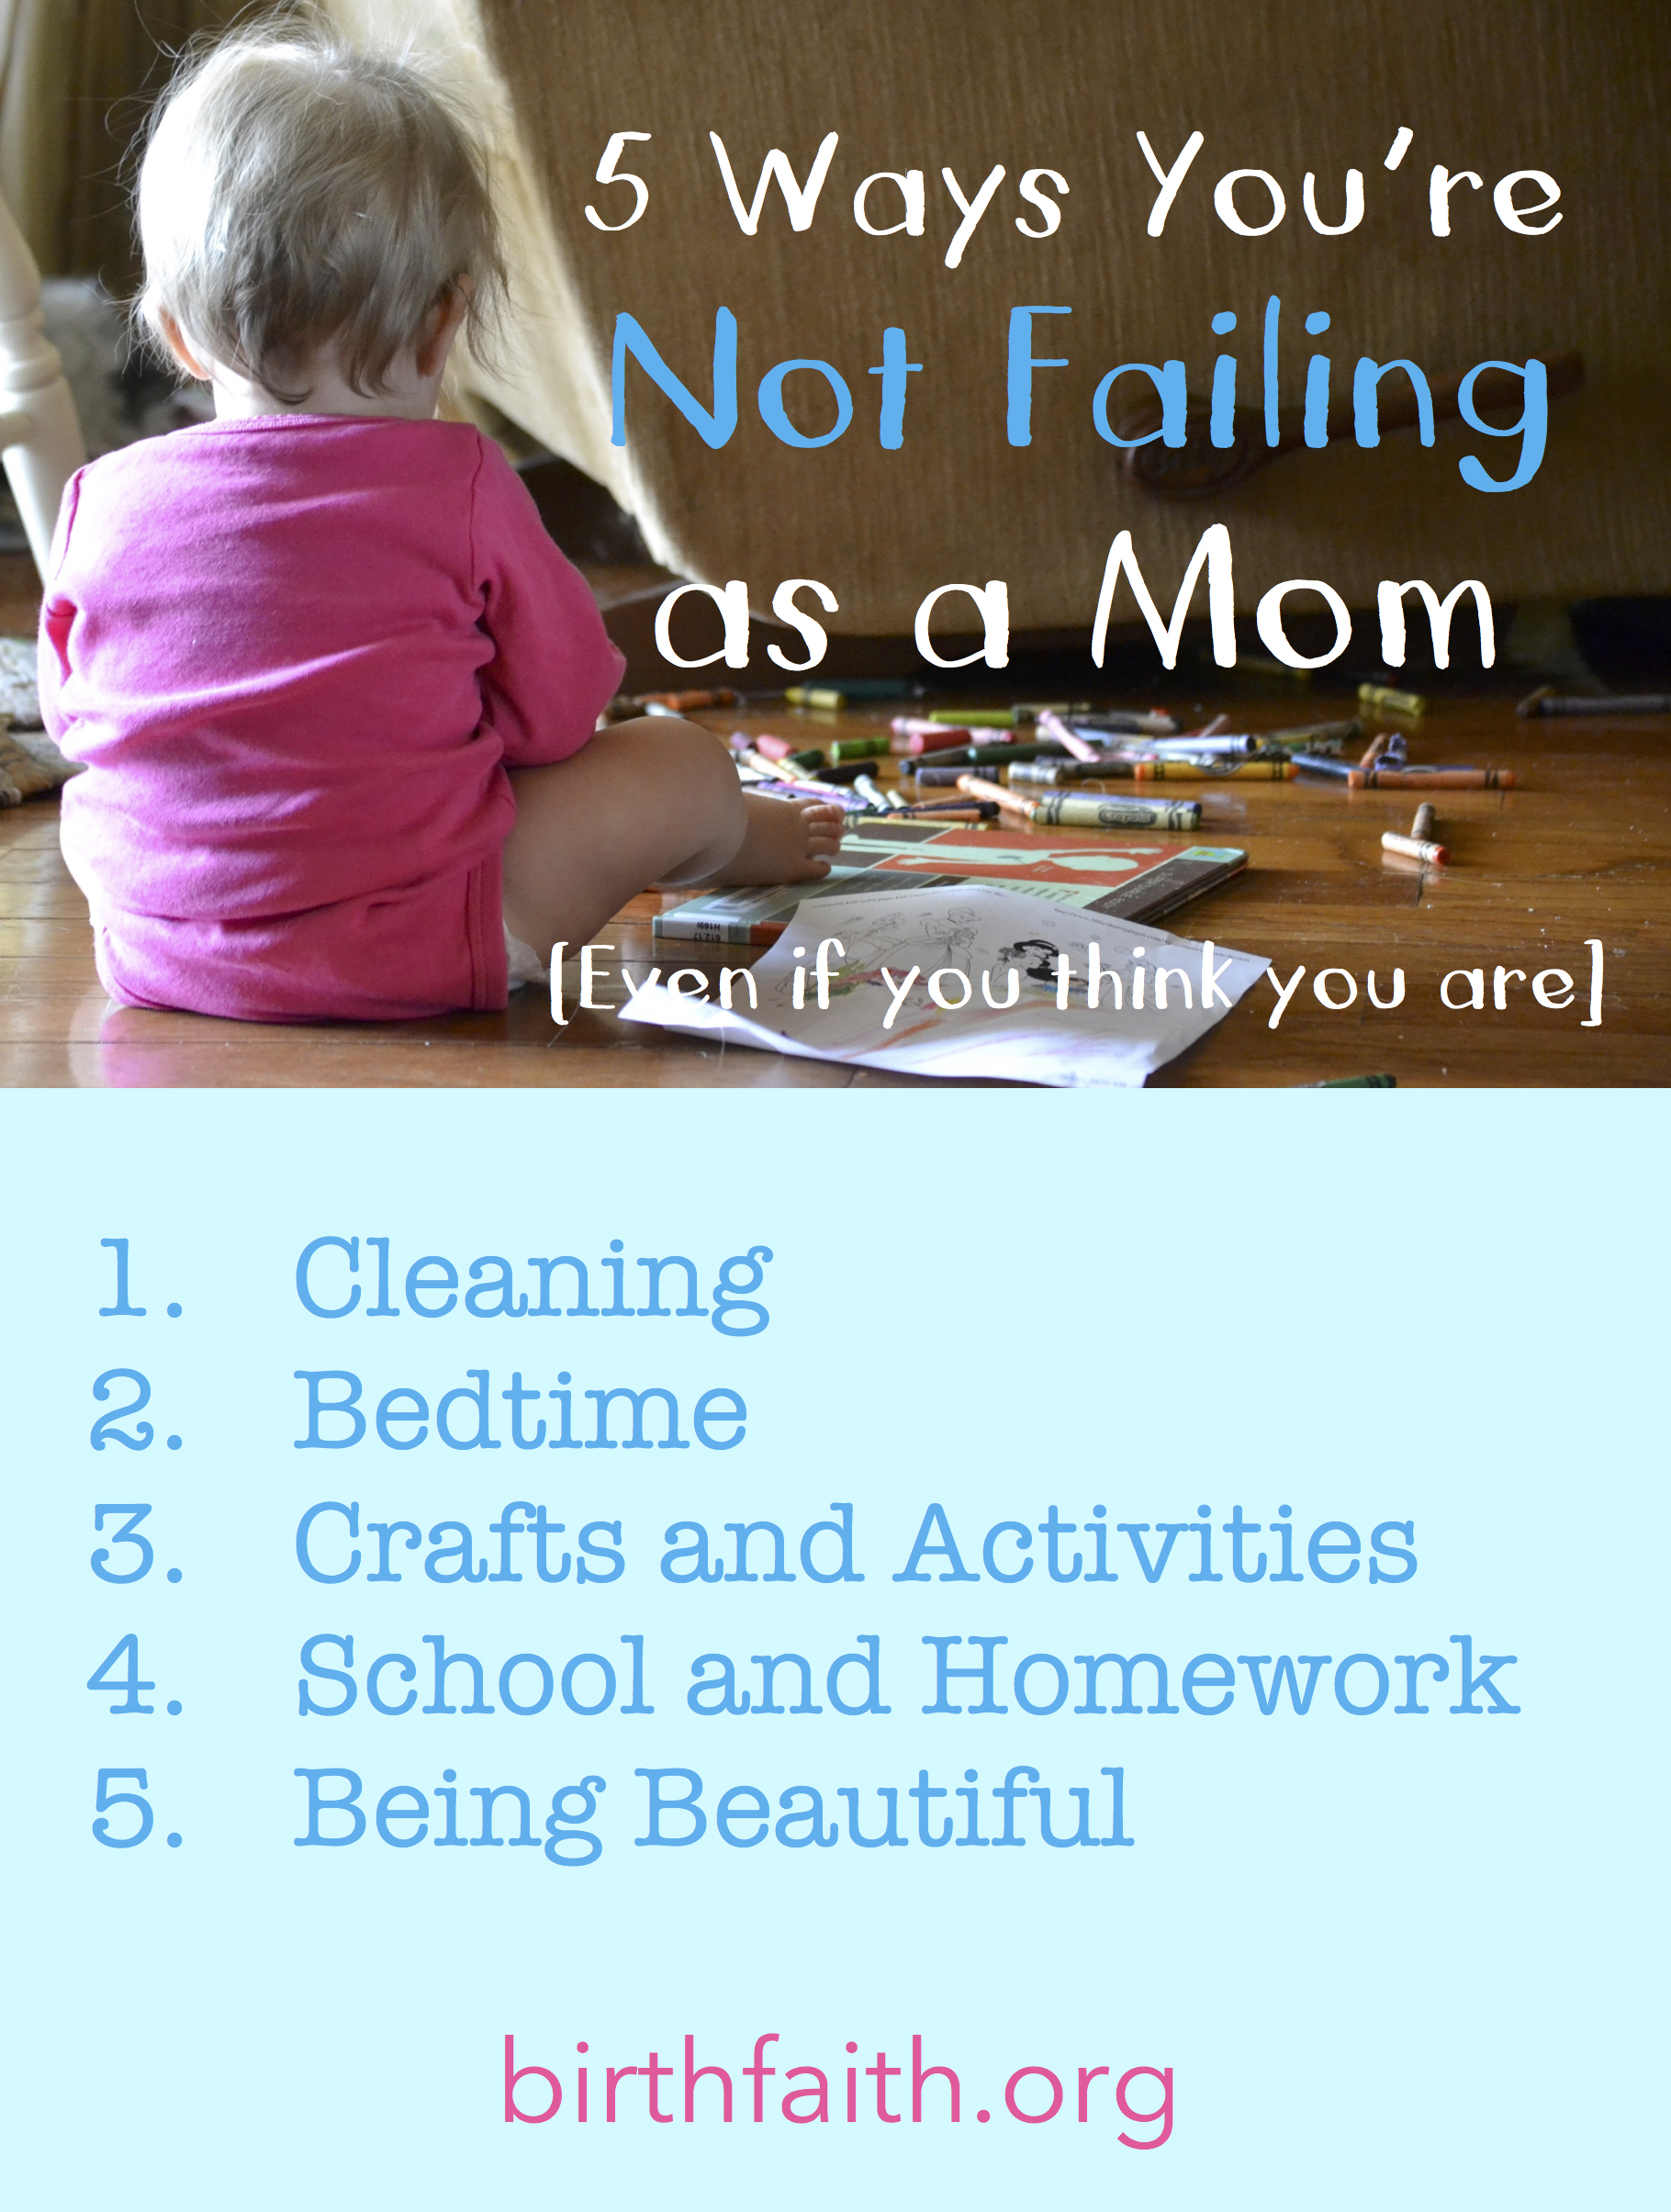 Birth faith a better birthing experience part 3 5 ways you arent failing as a mom2 fandeluxe Image collections